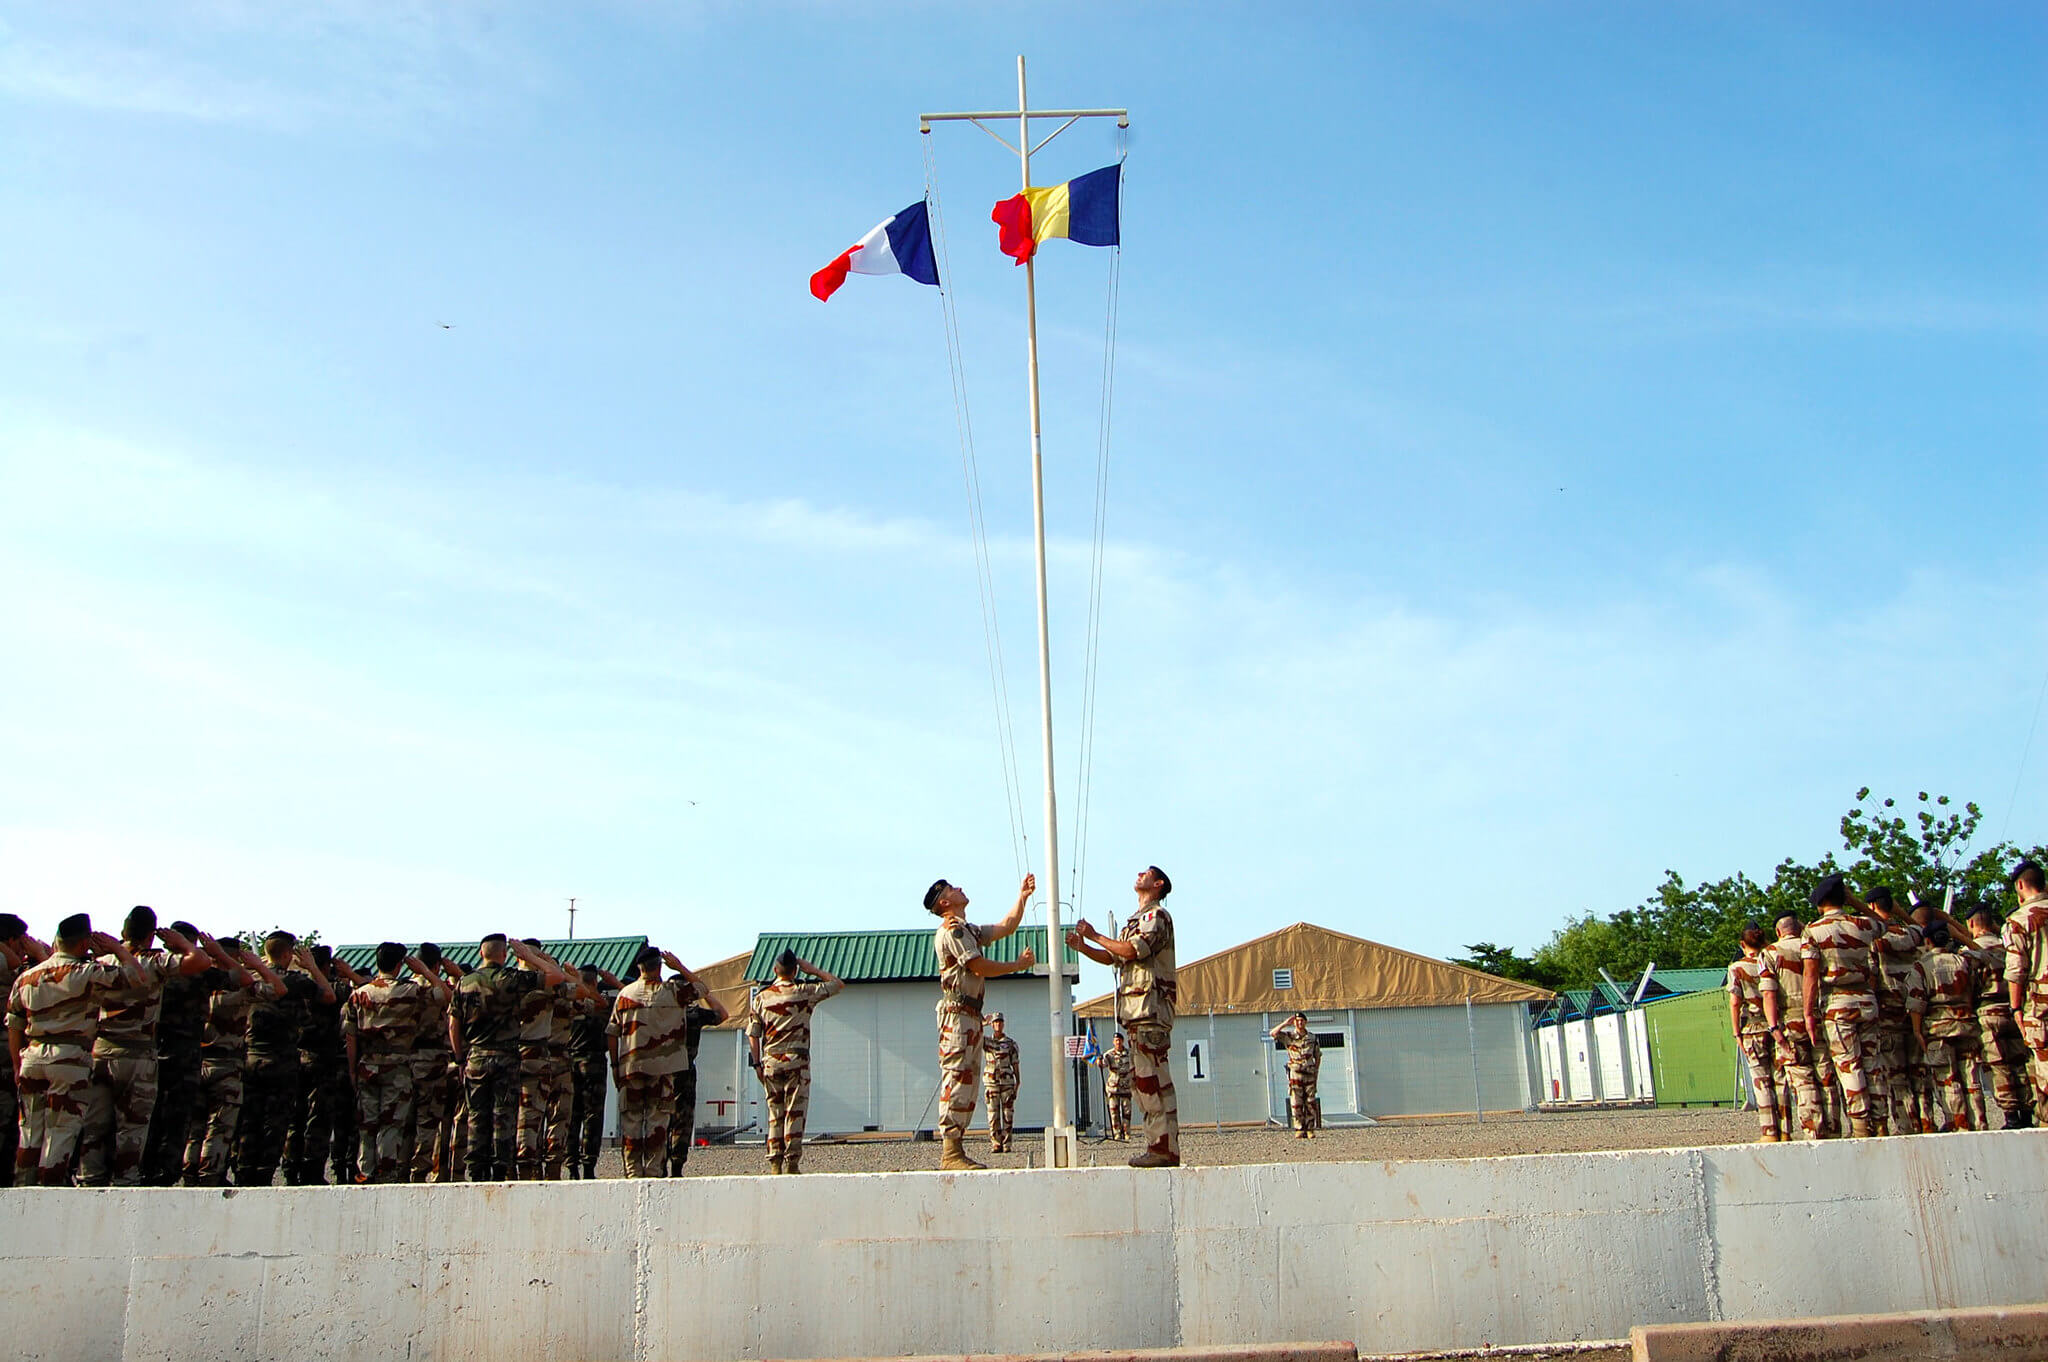 French and Chad military participate in a flag ceremony to commemorate the launch of Operation Barkhane, an anti-terrorist operation in Africa's Sahel region beginning in July 2014. © US Army Africa